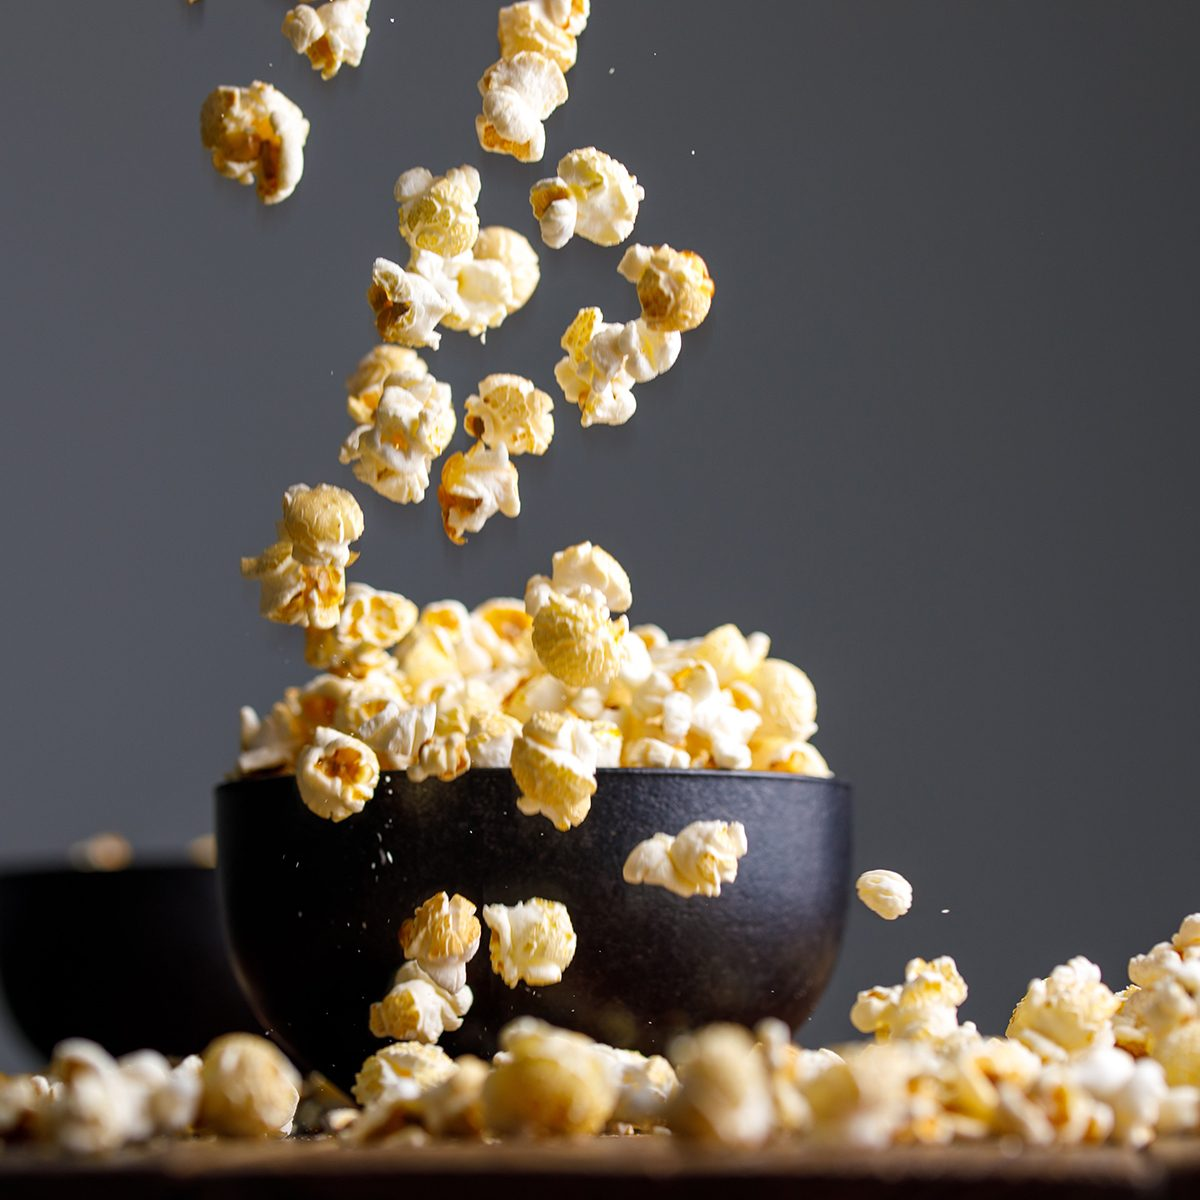 Popcorn falling into a bowl from above